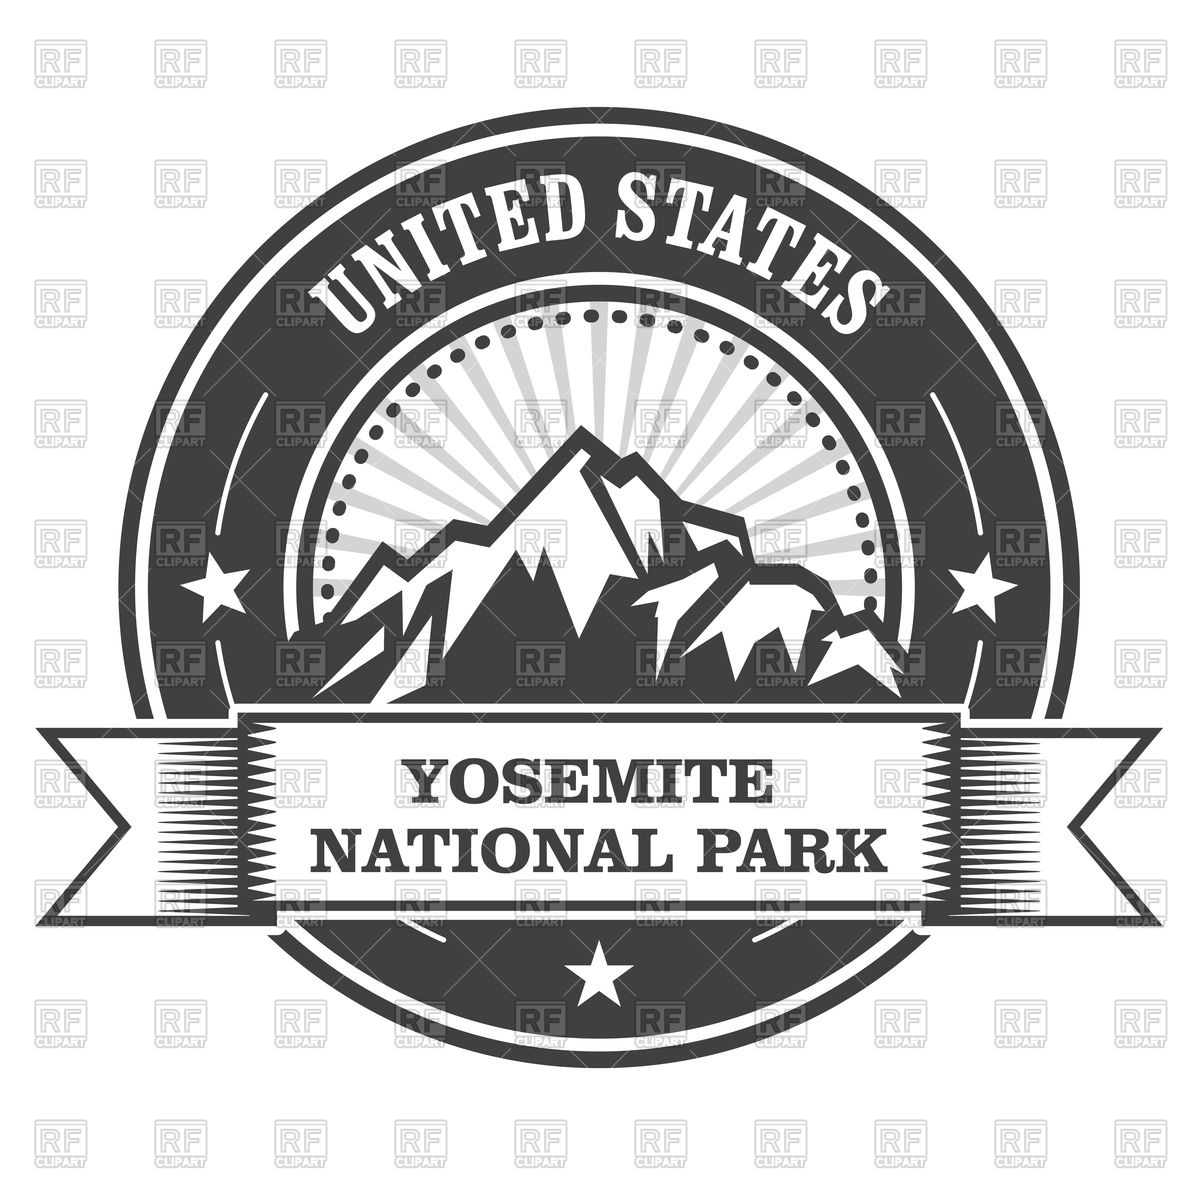 Yosemite National Park round stamp with mountains Vector Image.